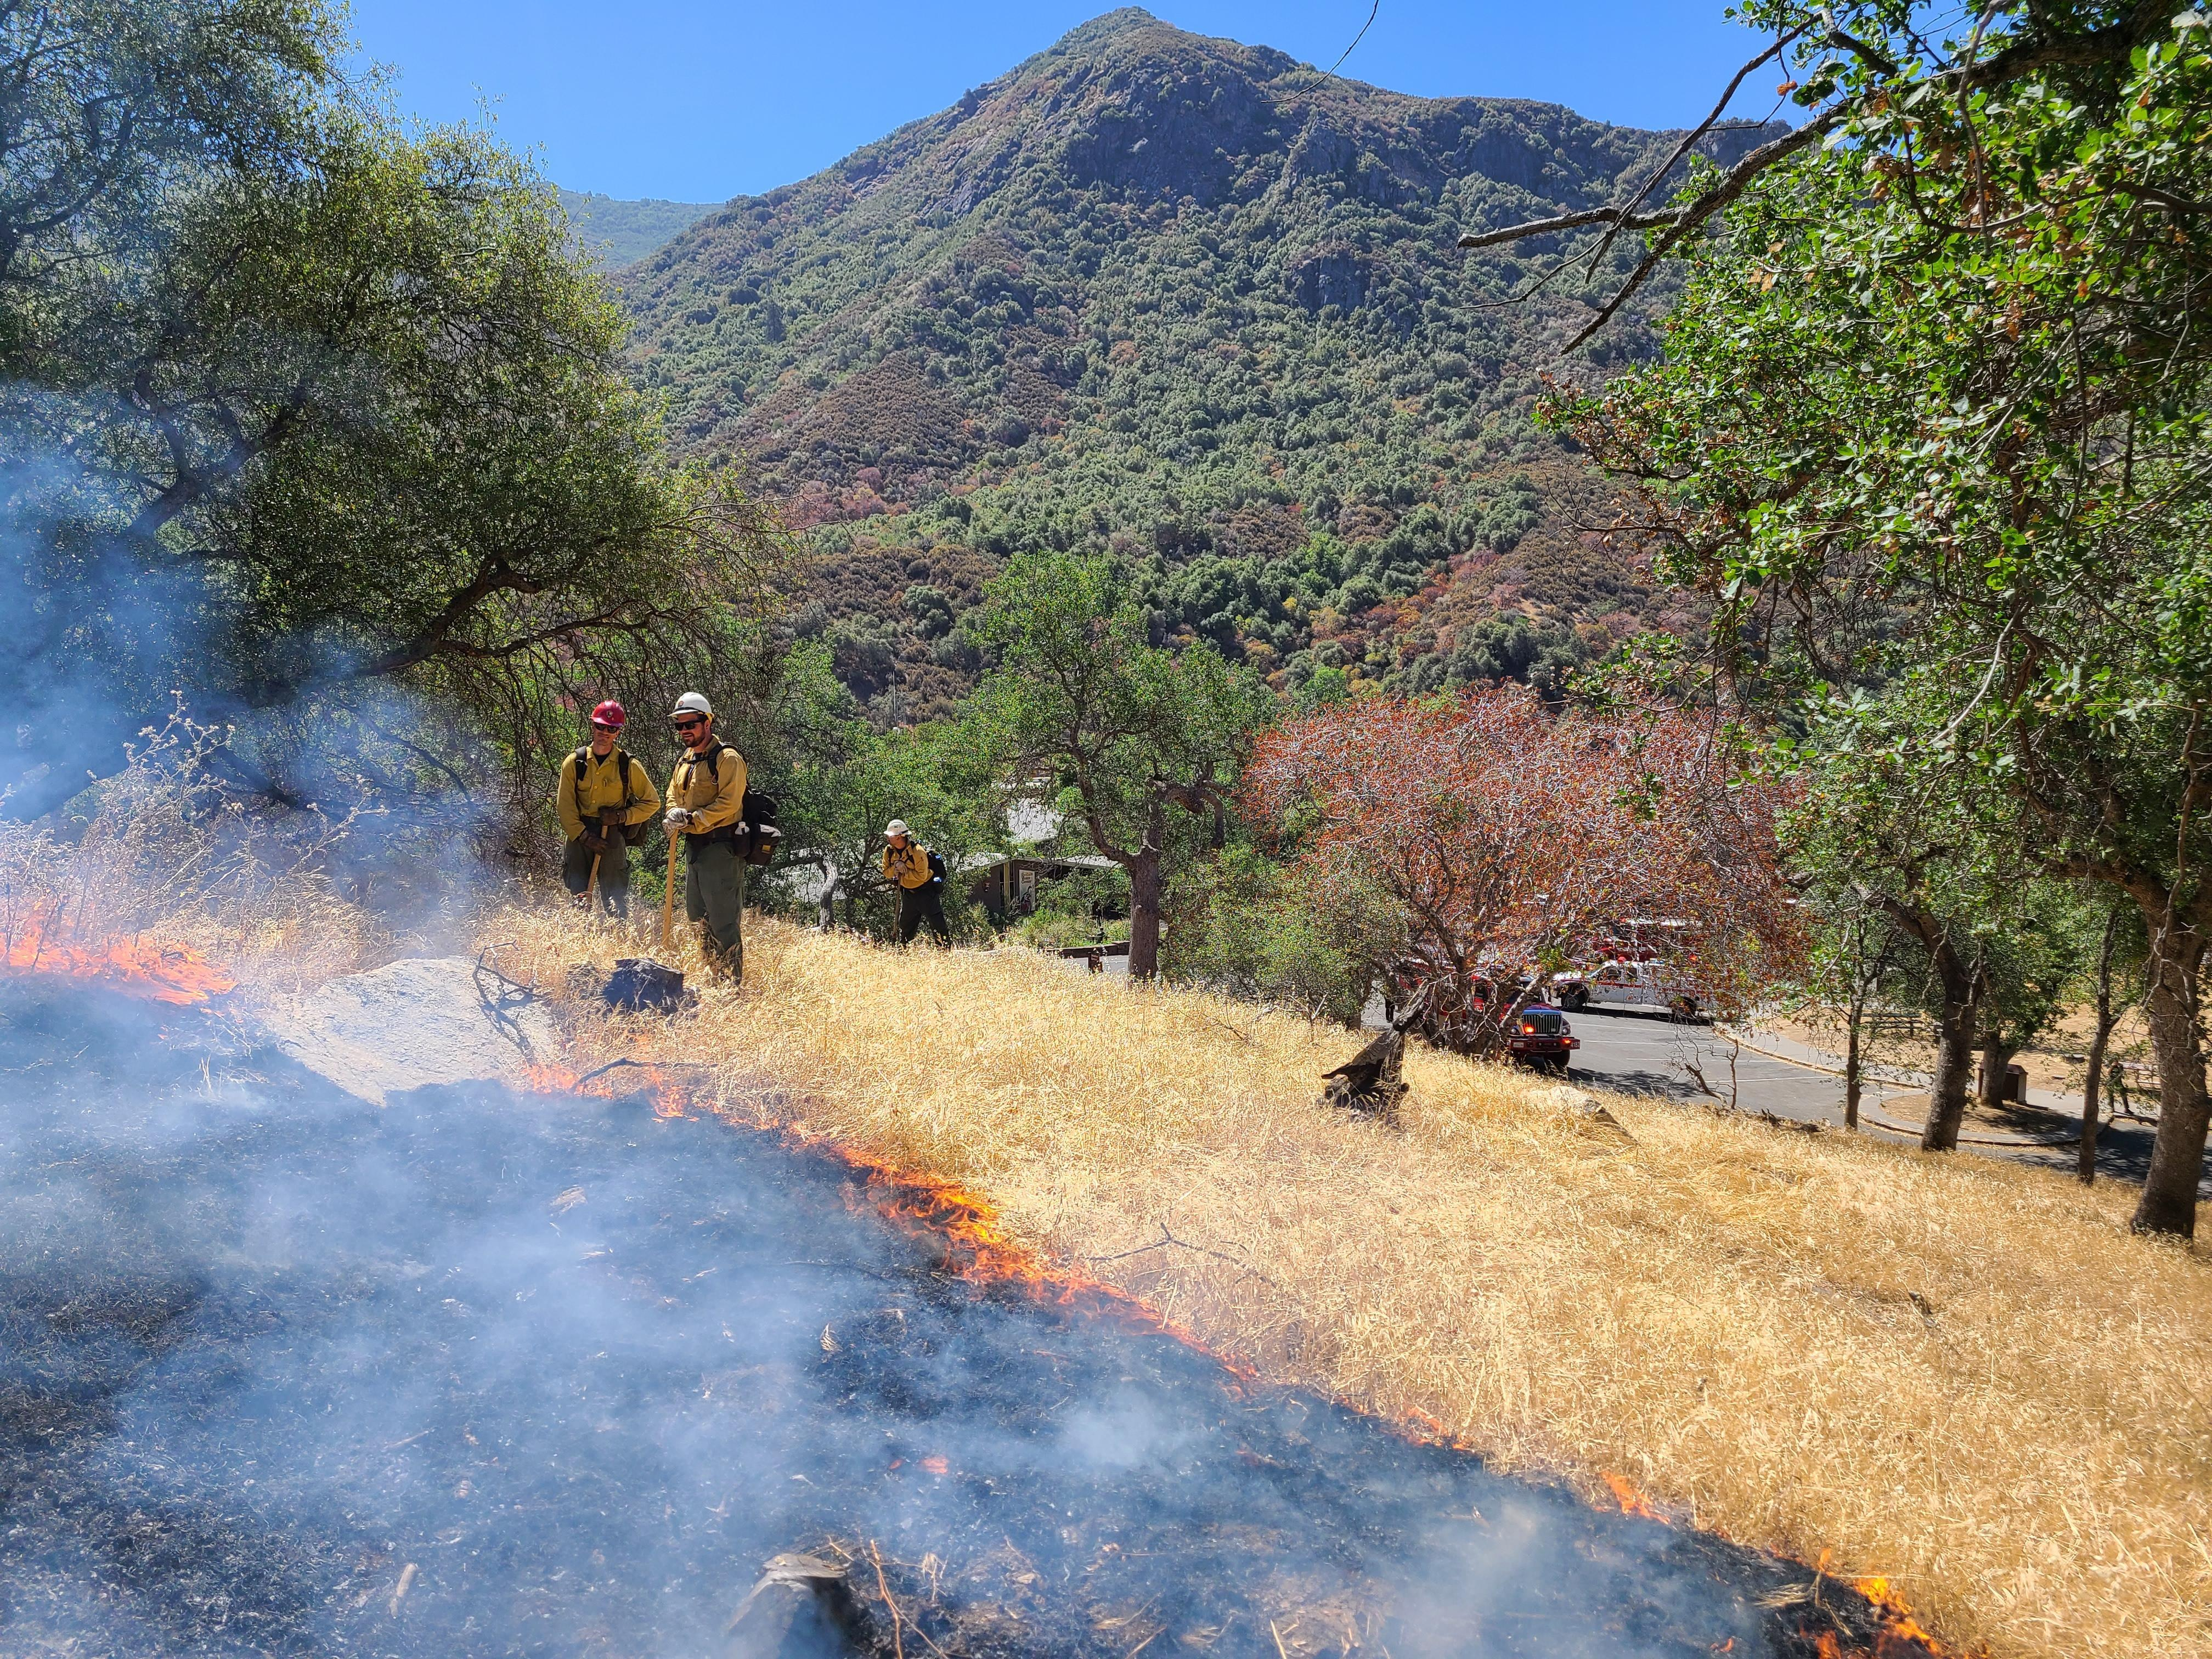 Low intensity flames burn through dead grass on a hillside with a mountain peak in the distance.